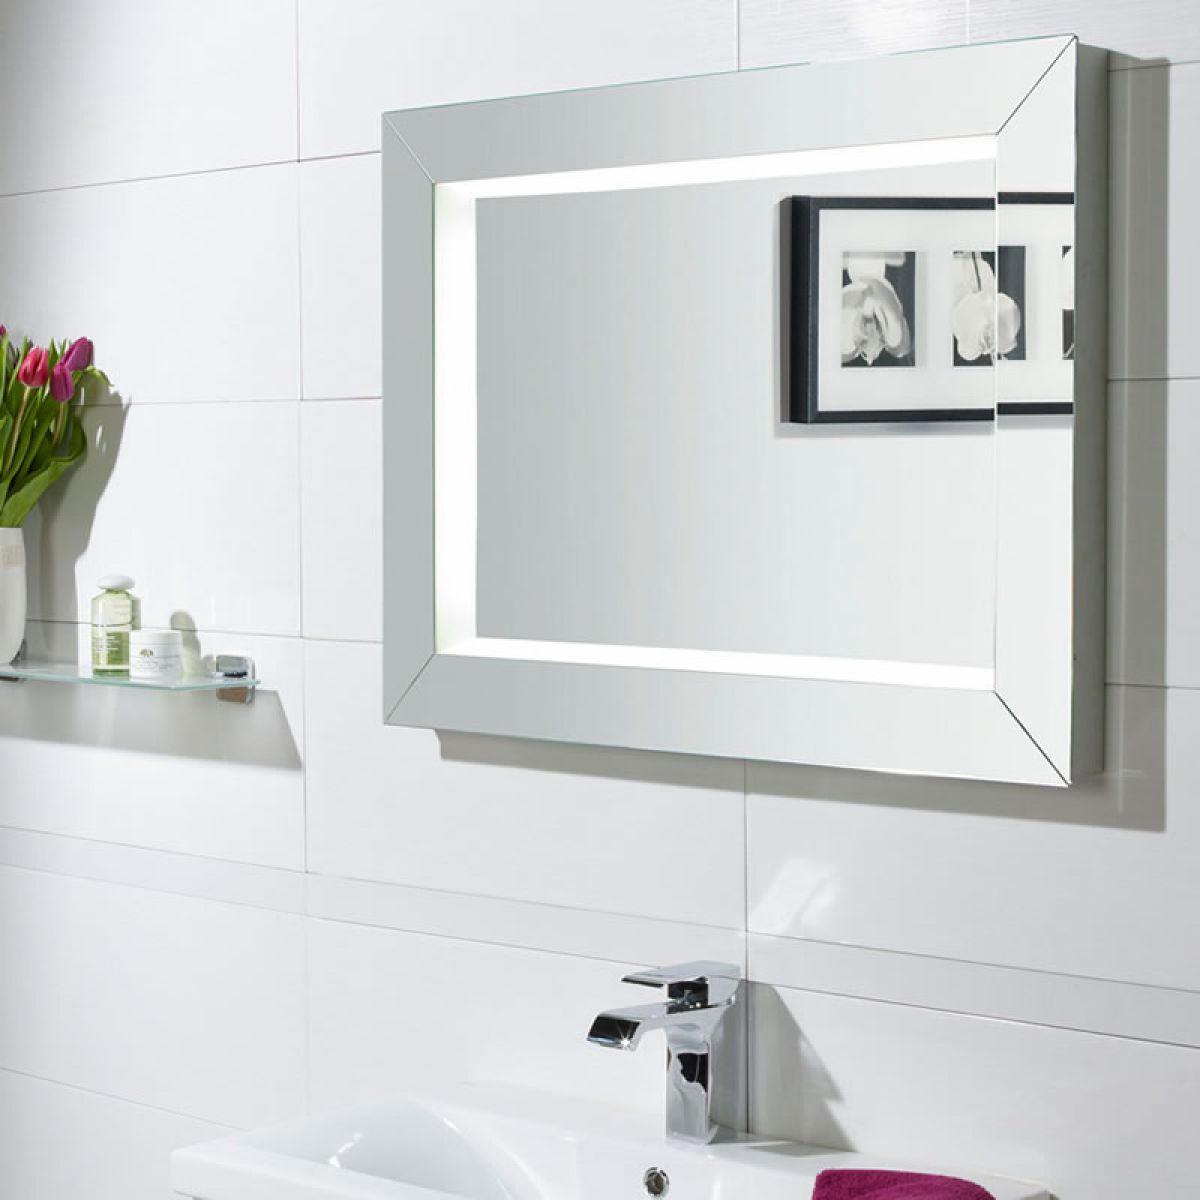 roper rhodes bathroom mirrors roper sense illuminated bathroom mirror uk bathrooms 20226